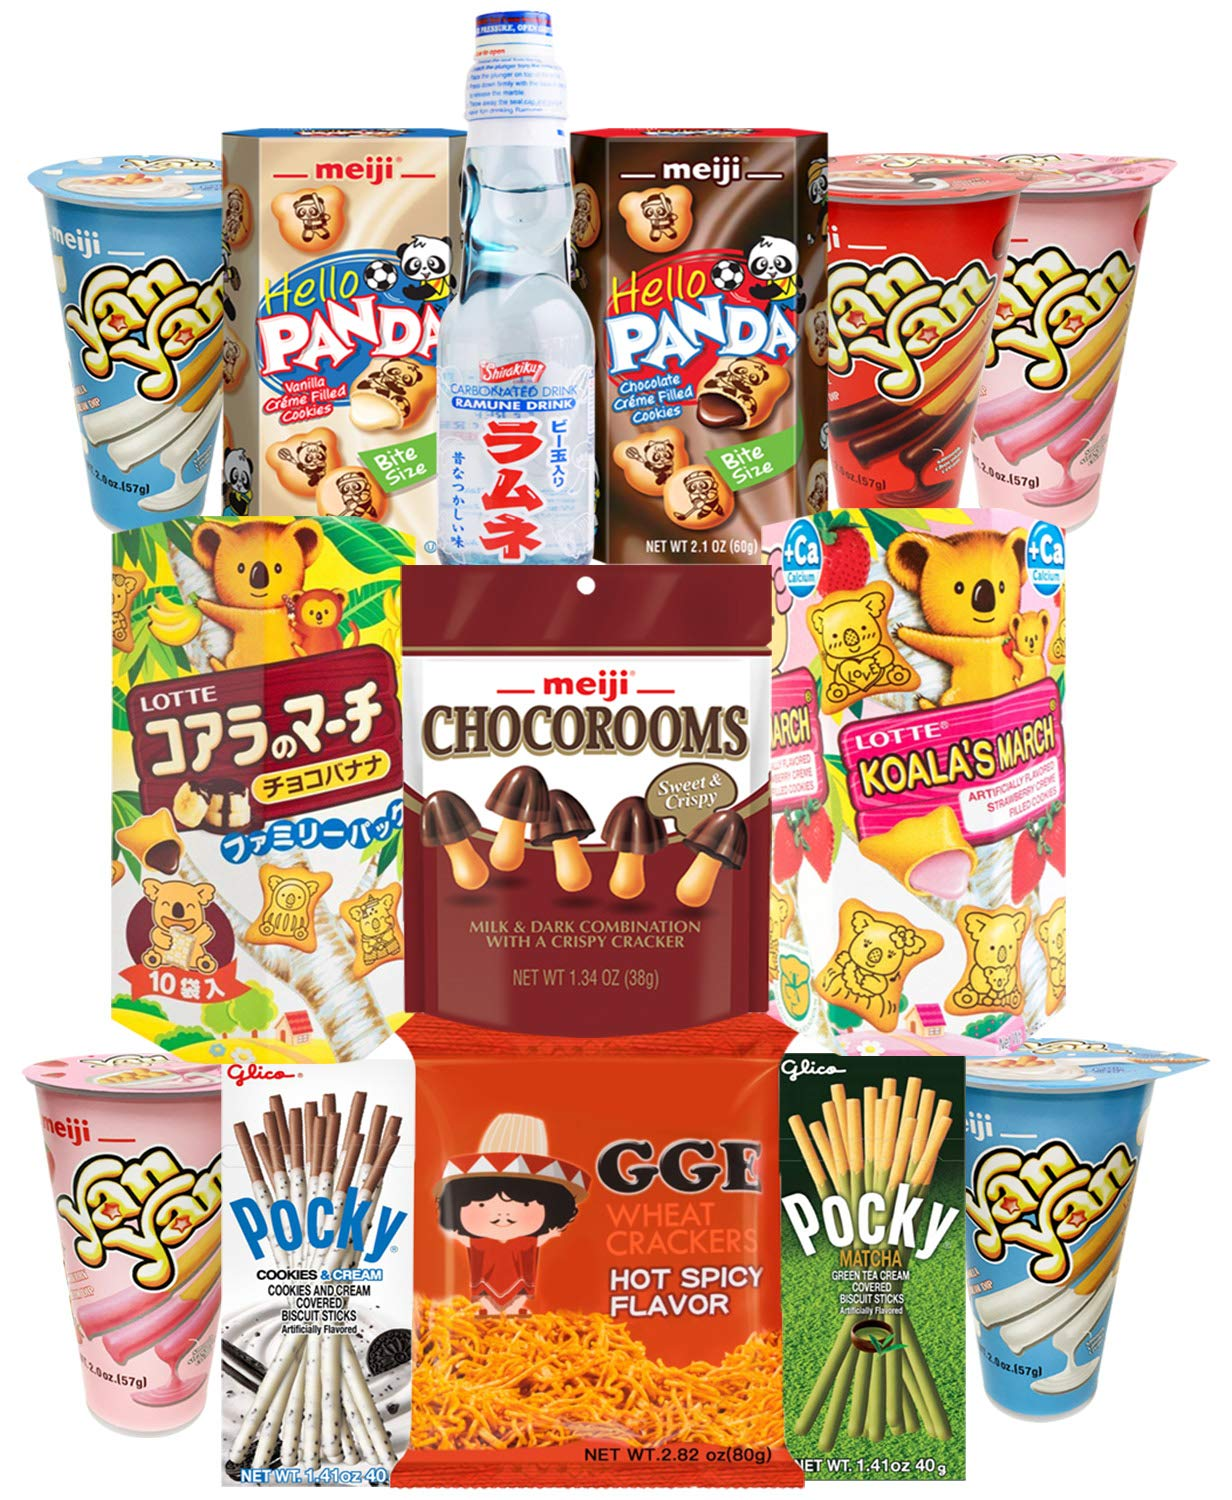 Japanese Snacks and Drink Care Package Snack Gift Box (12 Count) - Assortment of Pocky Sticks, Yan Yan, Hello Panda, Koala, GGE , Pejoy, Candy, Ramune Soda - Variety Pack Flavors